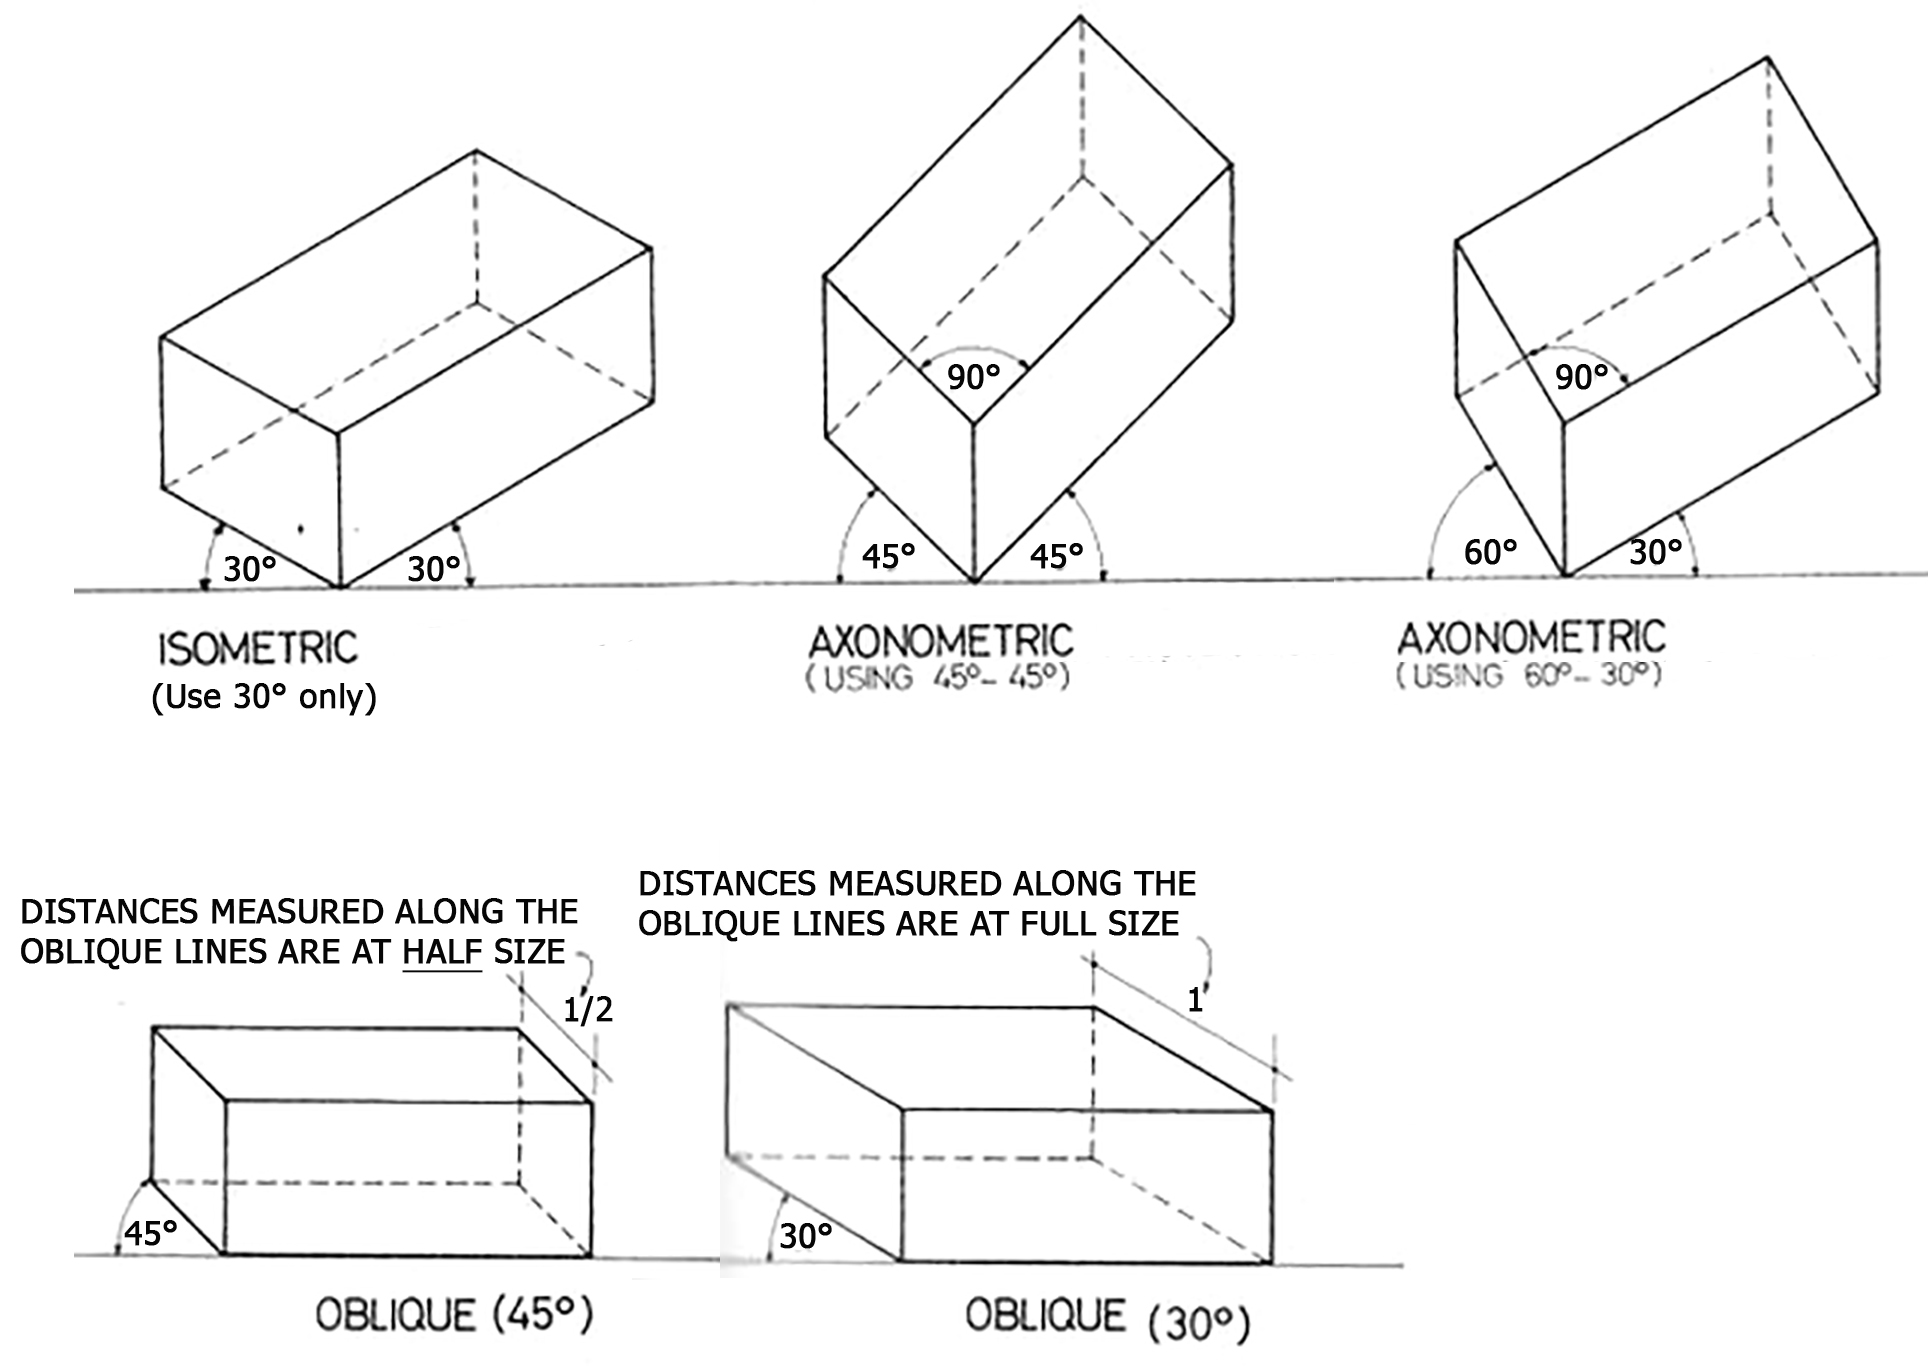 Axonometric Vs Isometric Projection Revit For Residential